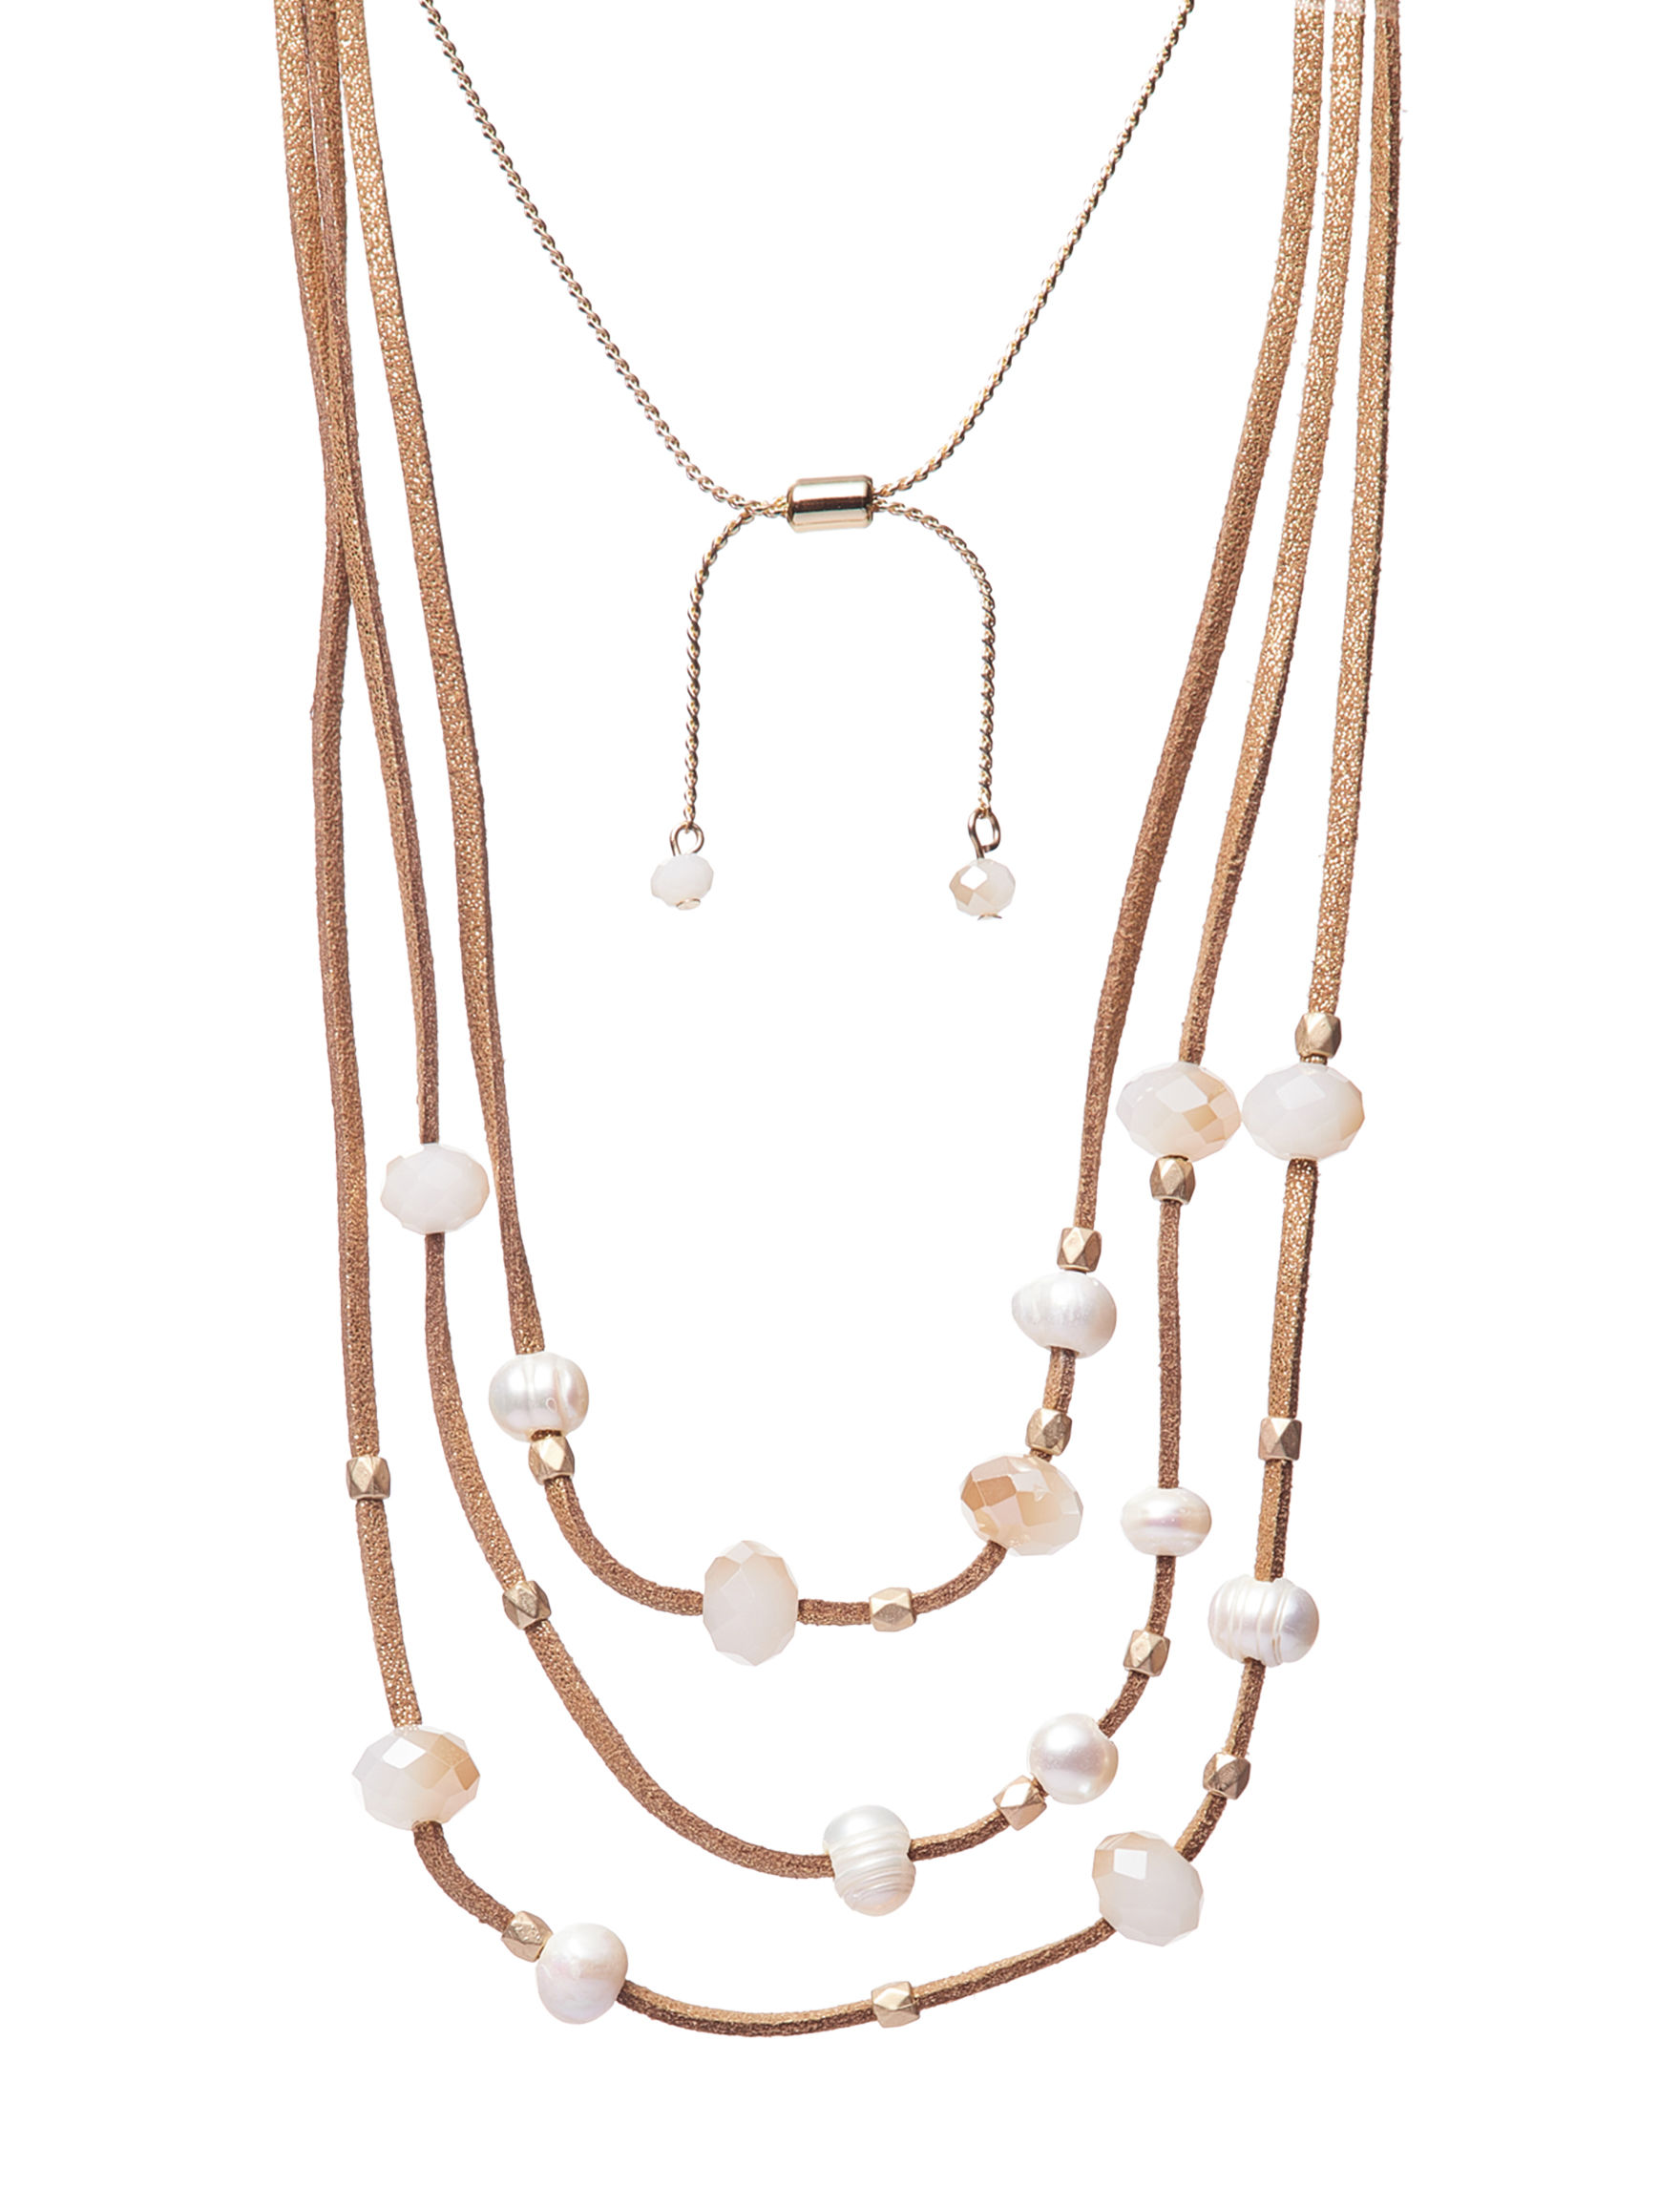 Hannah Brown / Multi Necklaces & Pendants Fashion Jewelry